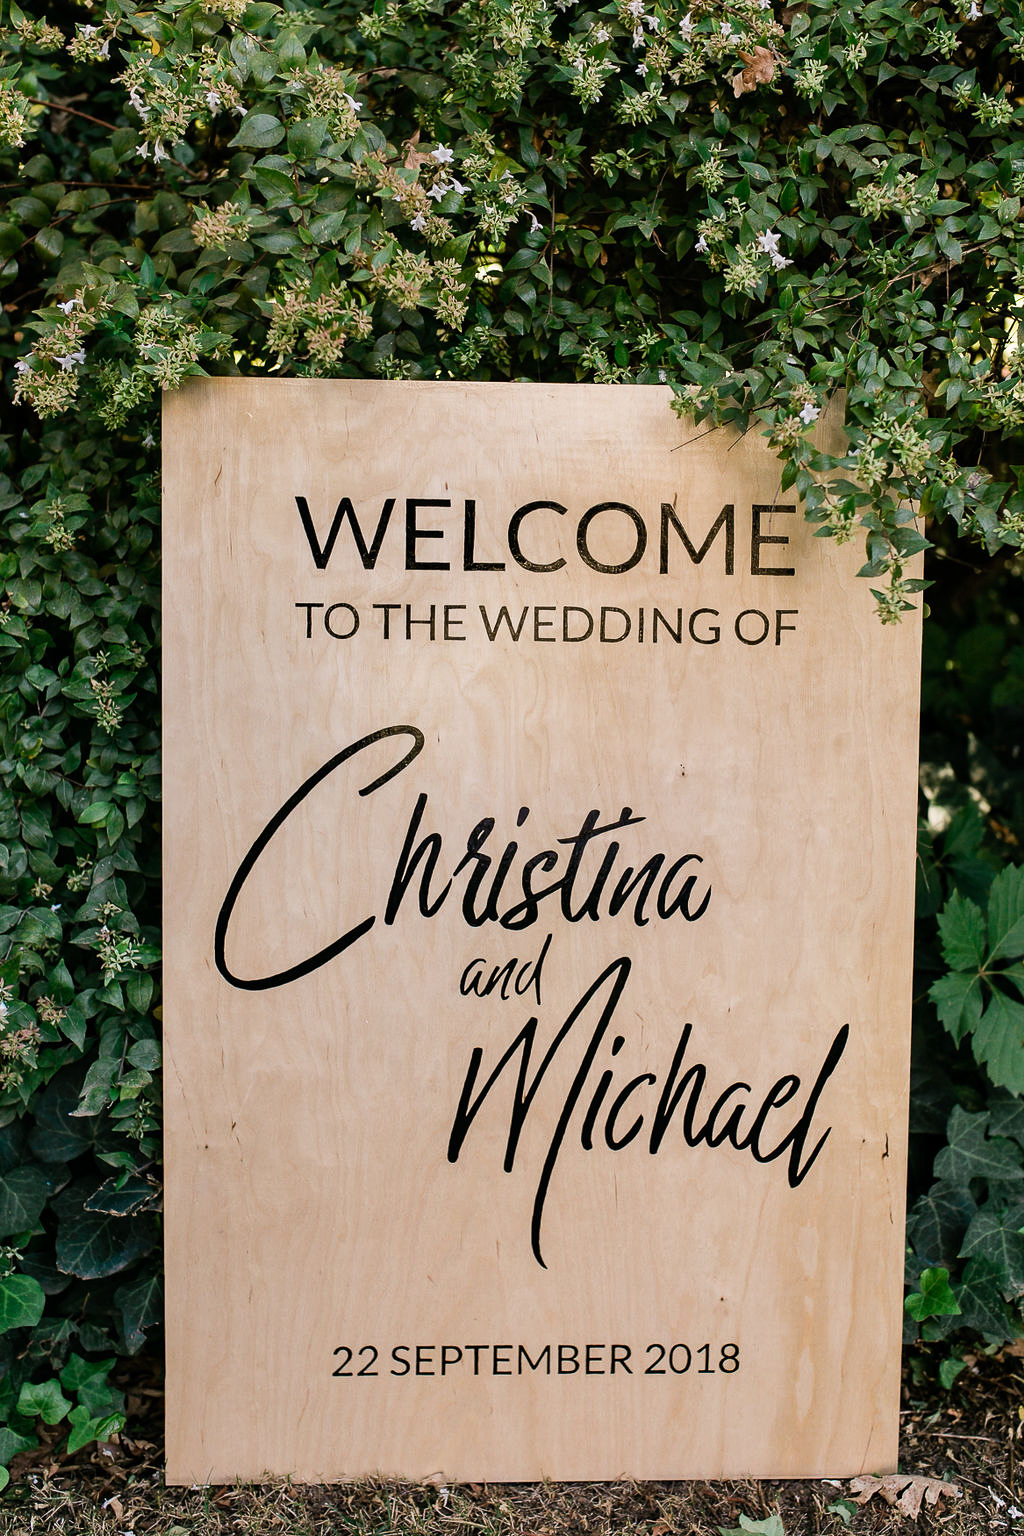 Christina_Mike_Reception-12.jpg